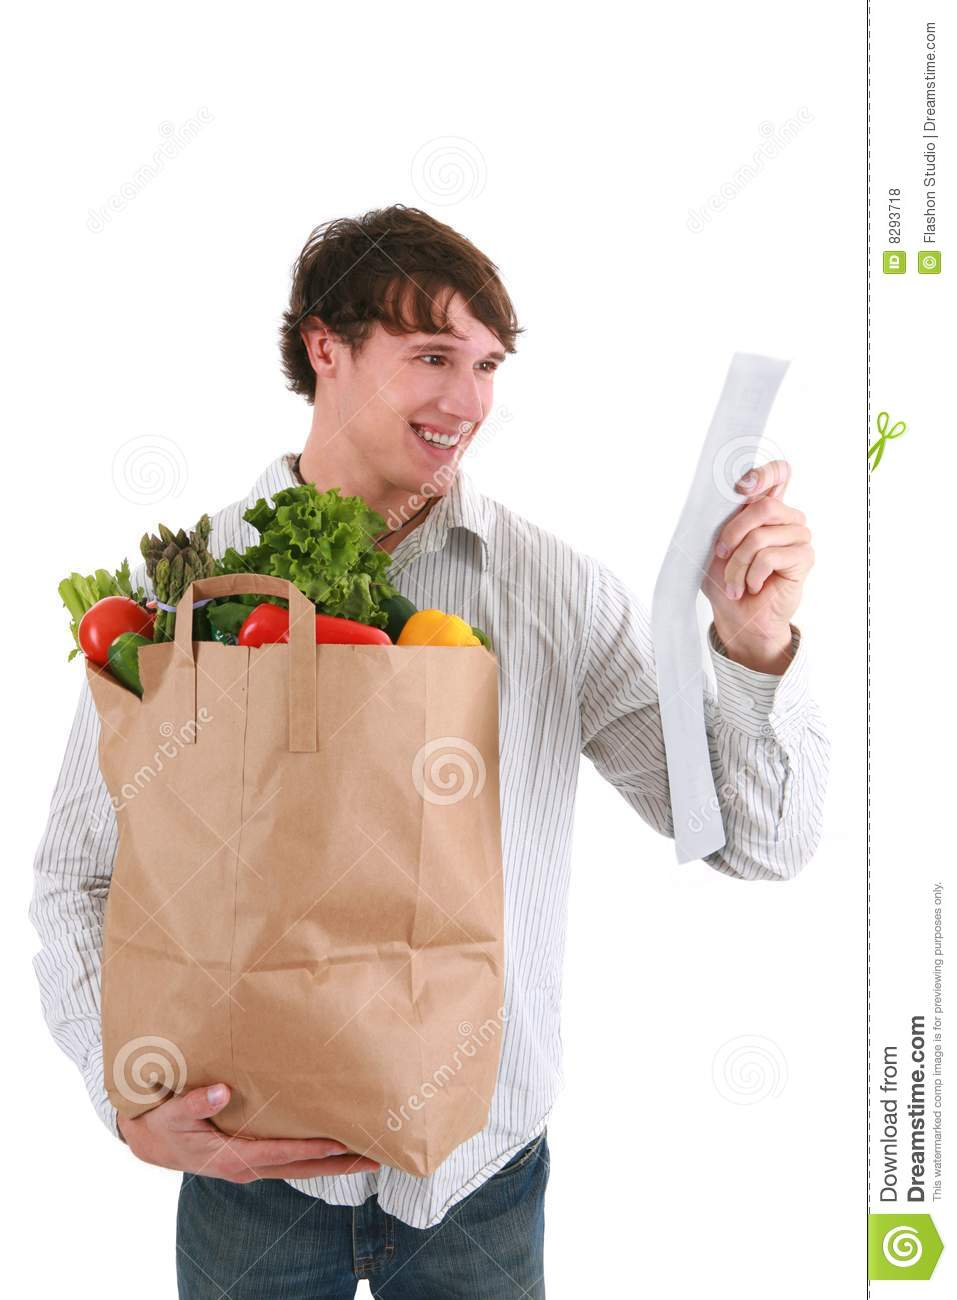 Gas Credit Card >> Young Man Holding Groceries Paper Bag And Receipt Stock Photo - Image of people, sack: 8293718